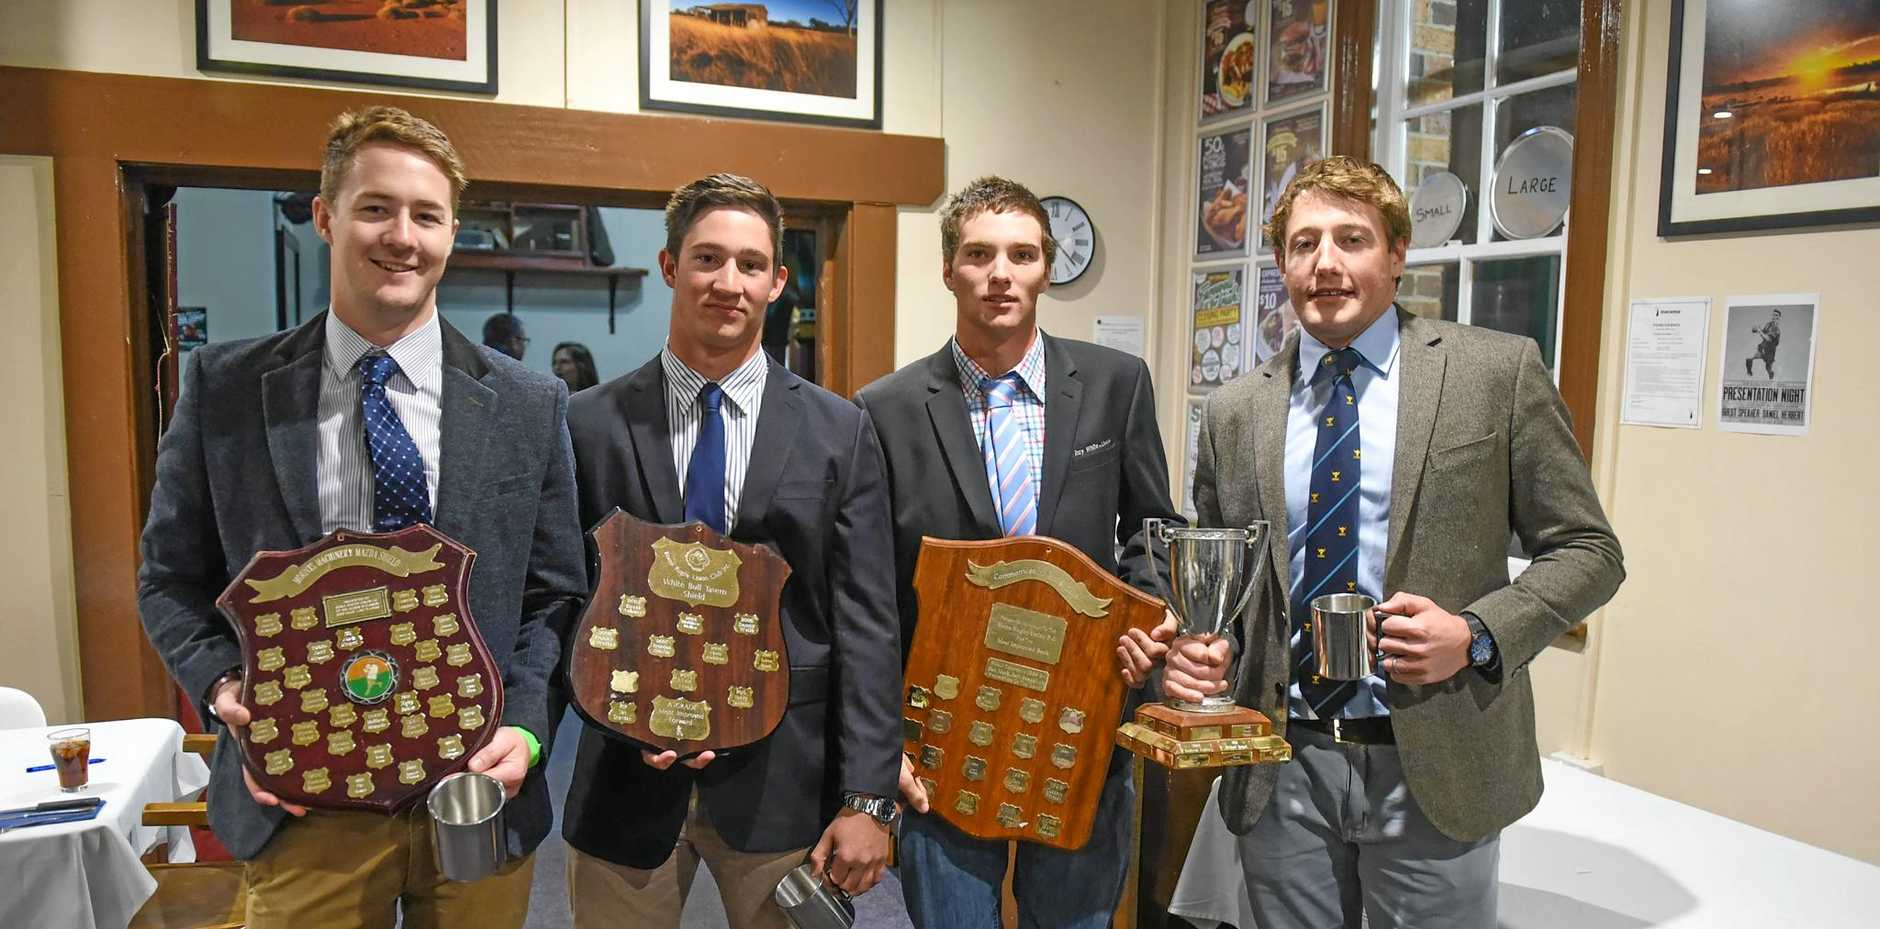 Jack Grant, Tom Sheridan, Aj Riley and Tom Capel with their awards.